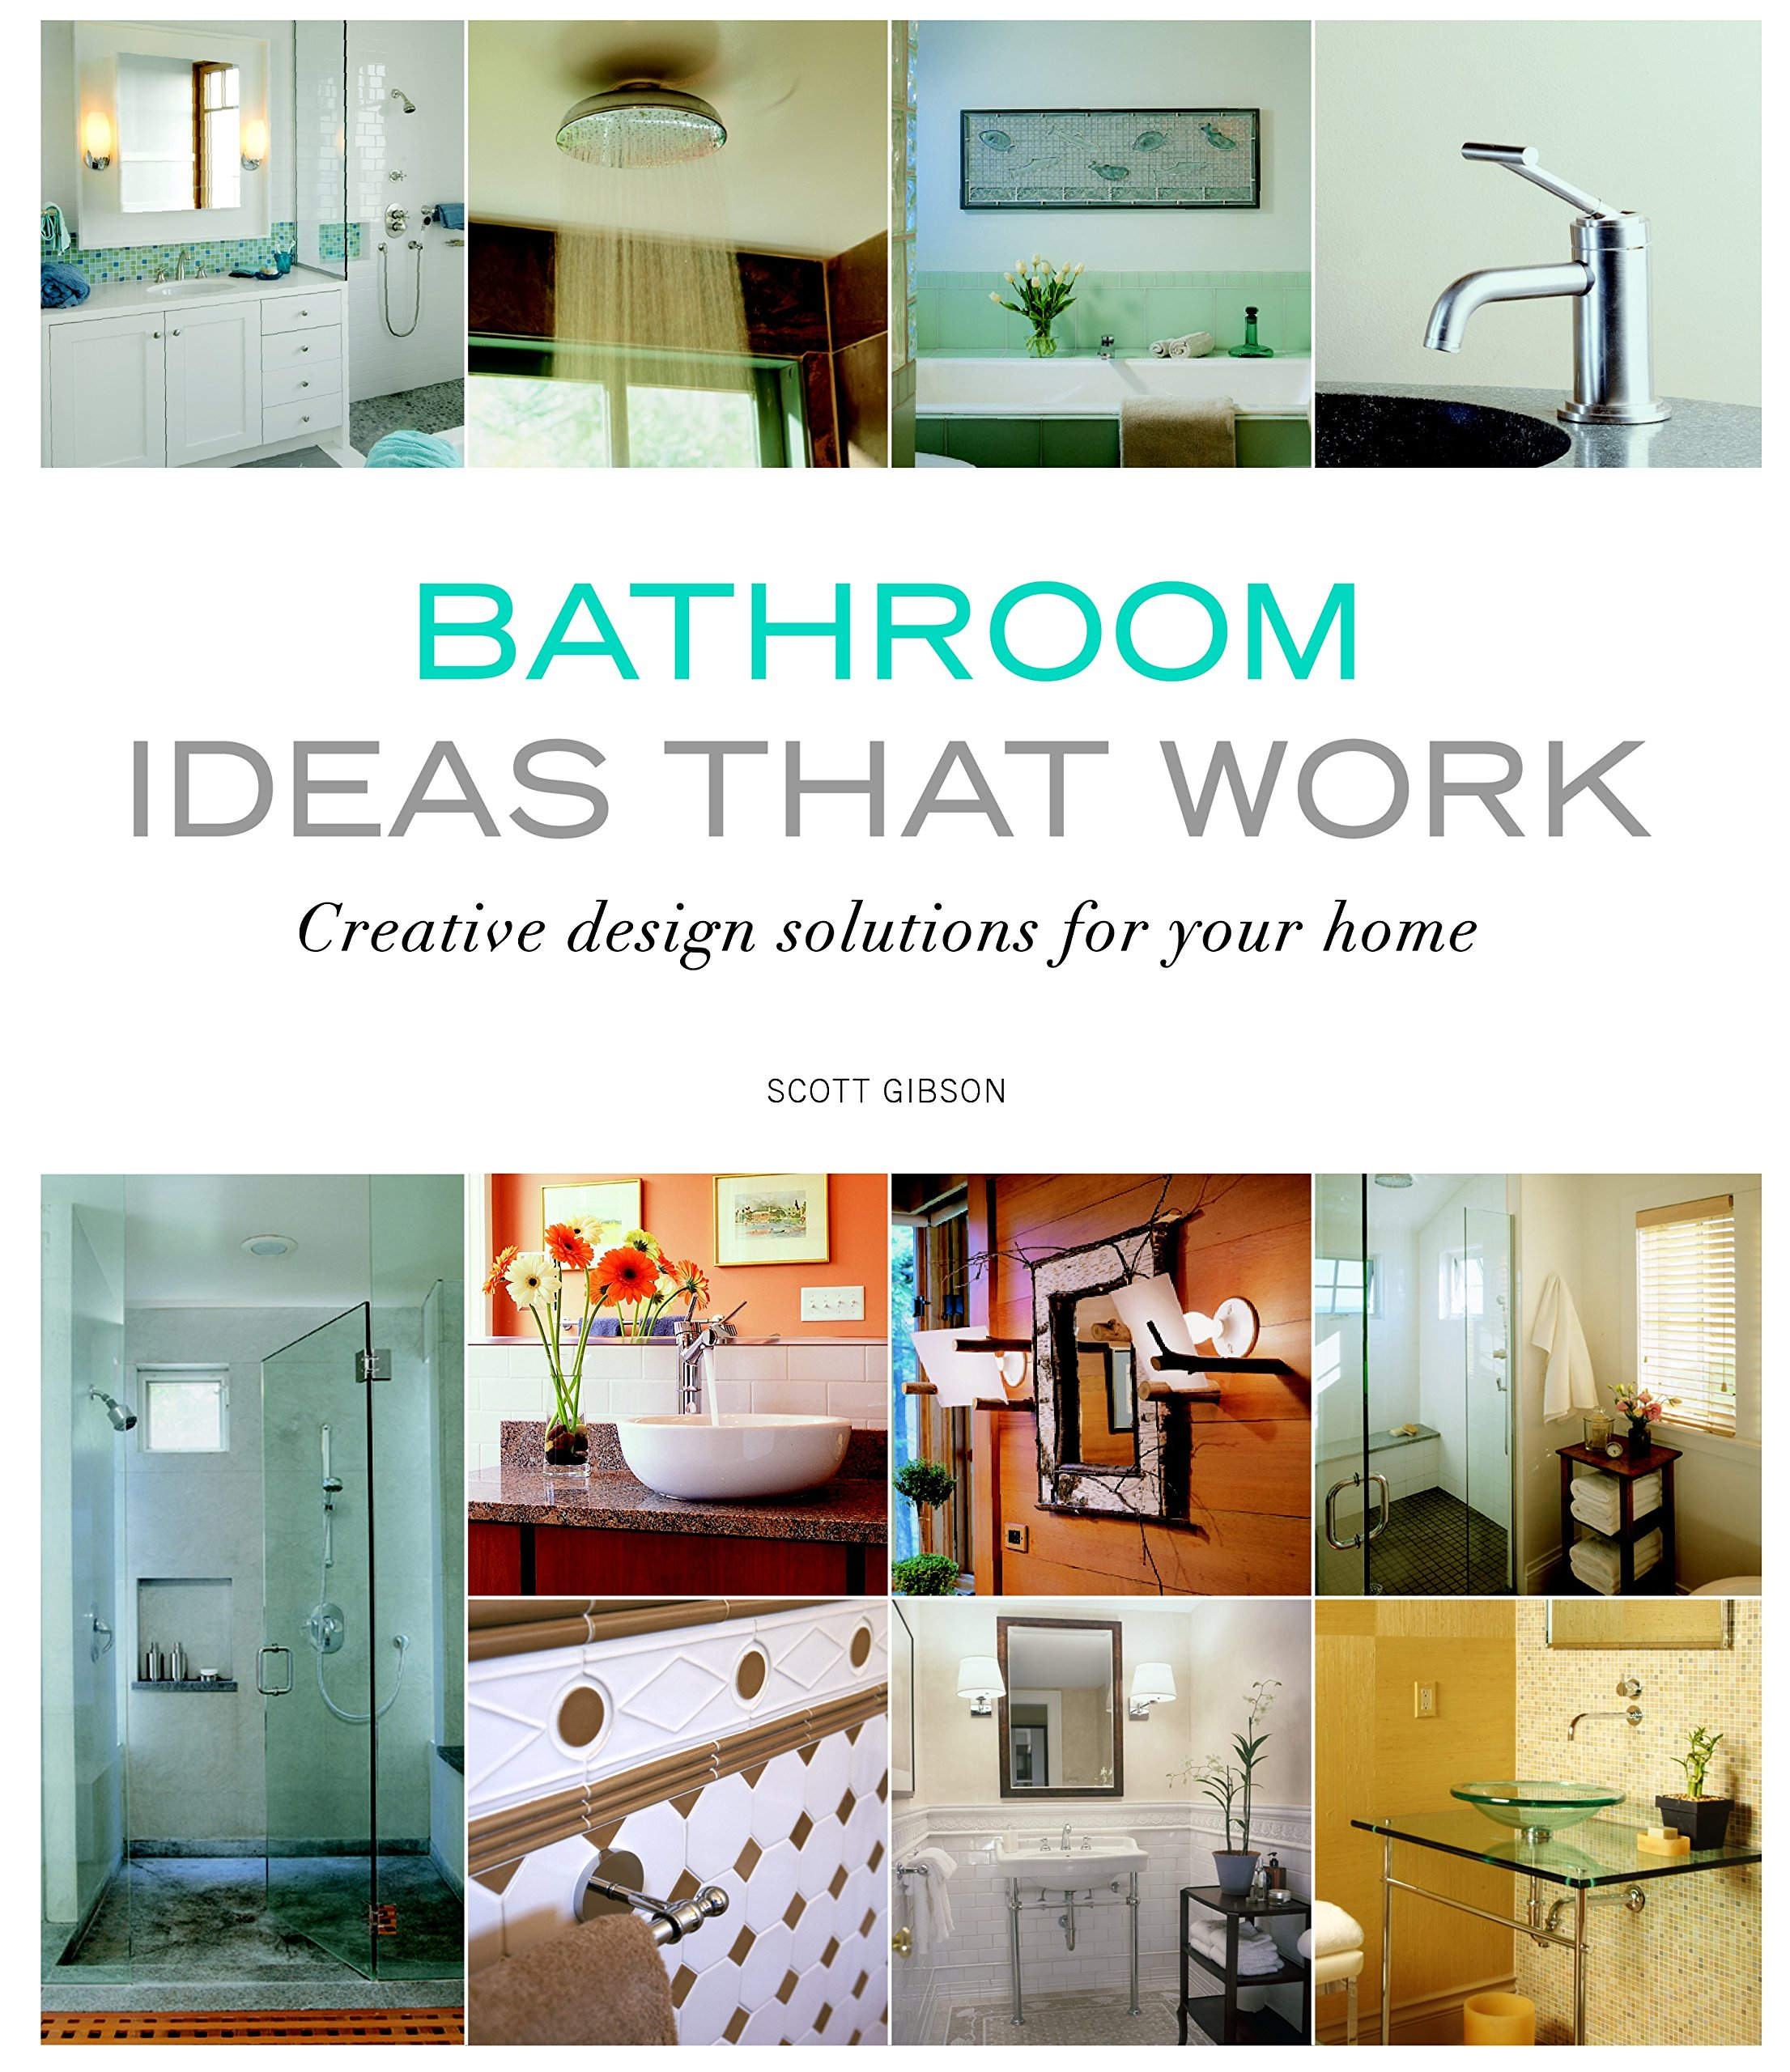 Bathroom Ideas That Work Creative Design Solutions For Your Home